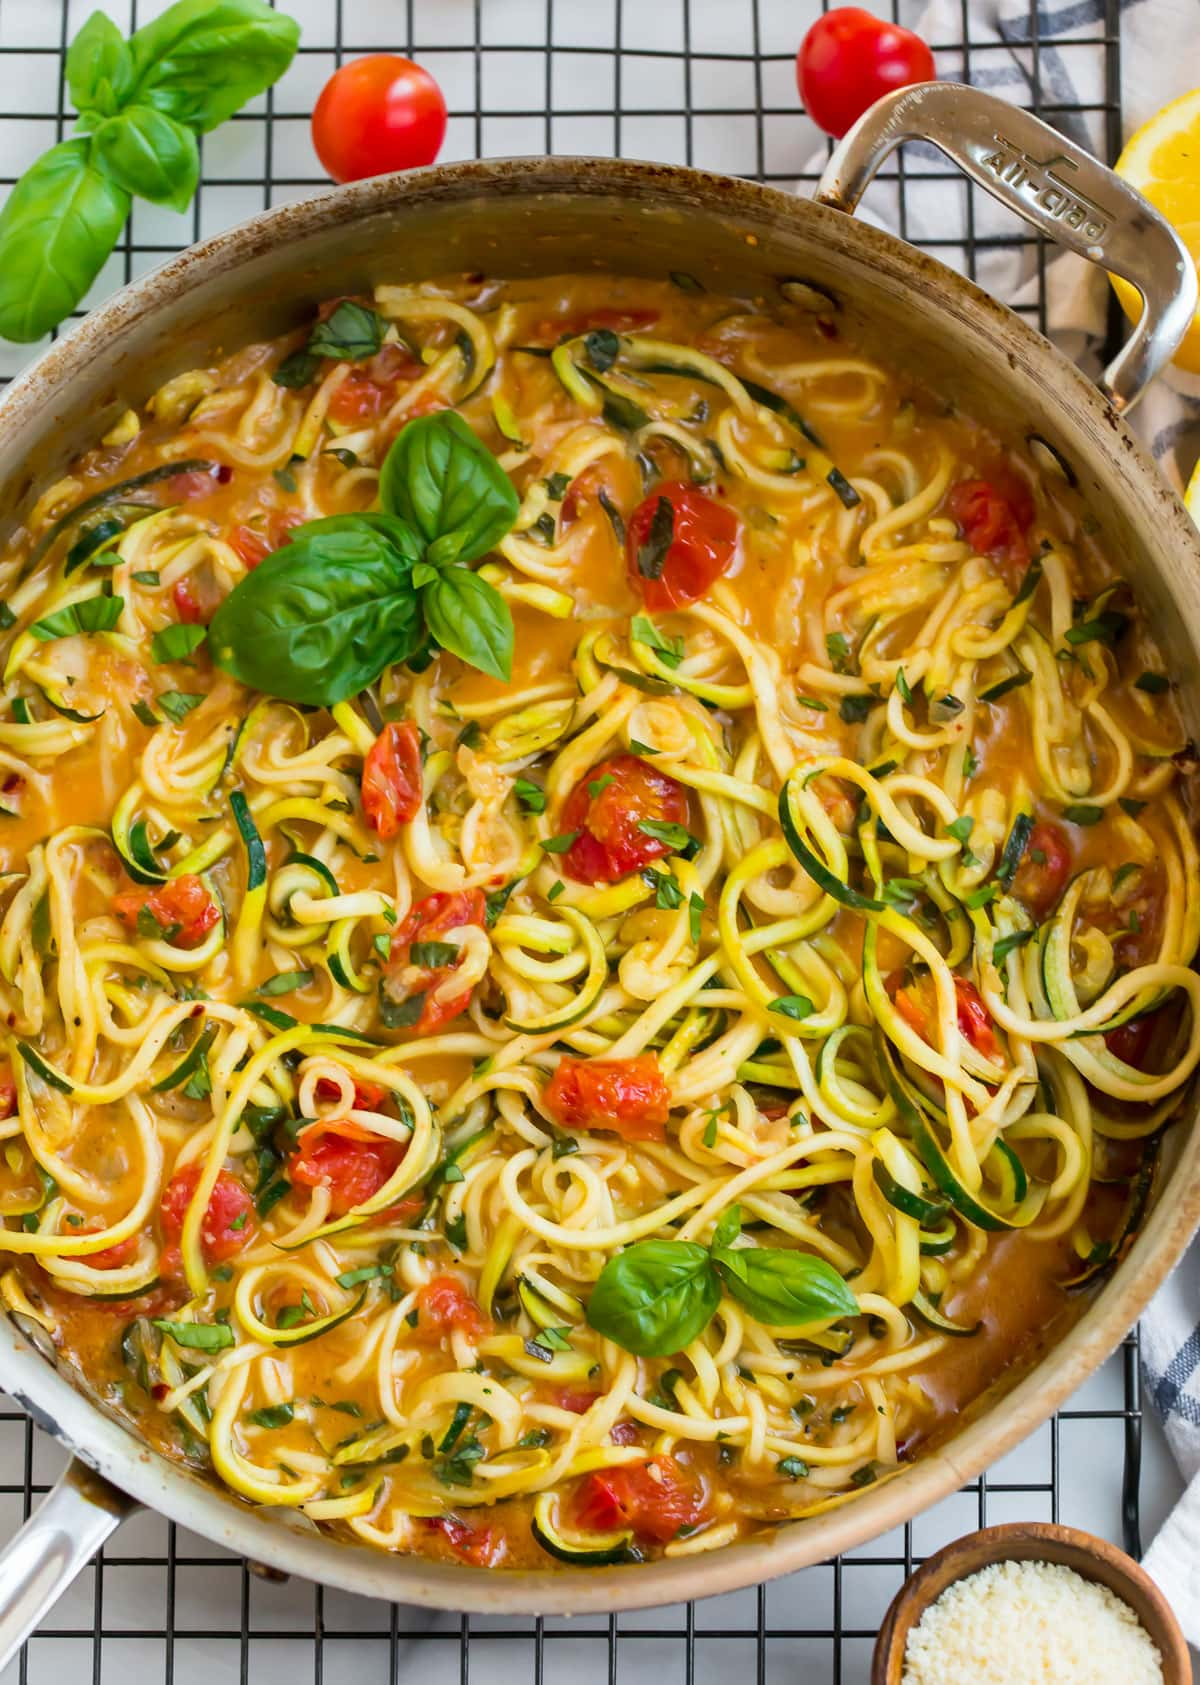 Healthy zucchini pasta in a skillet with tomatoes and basil